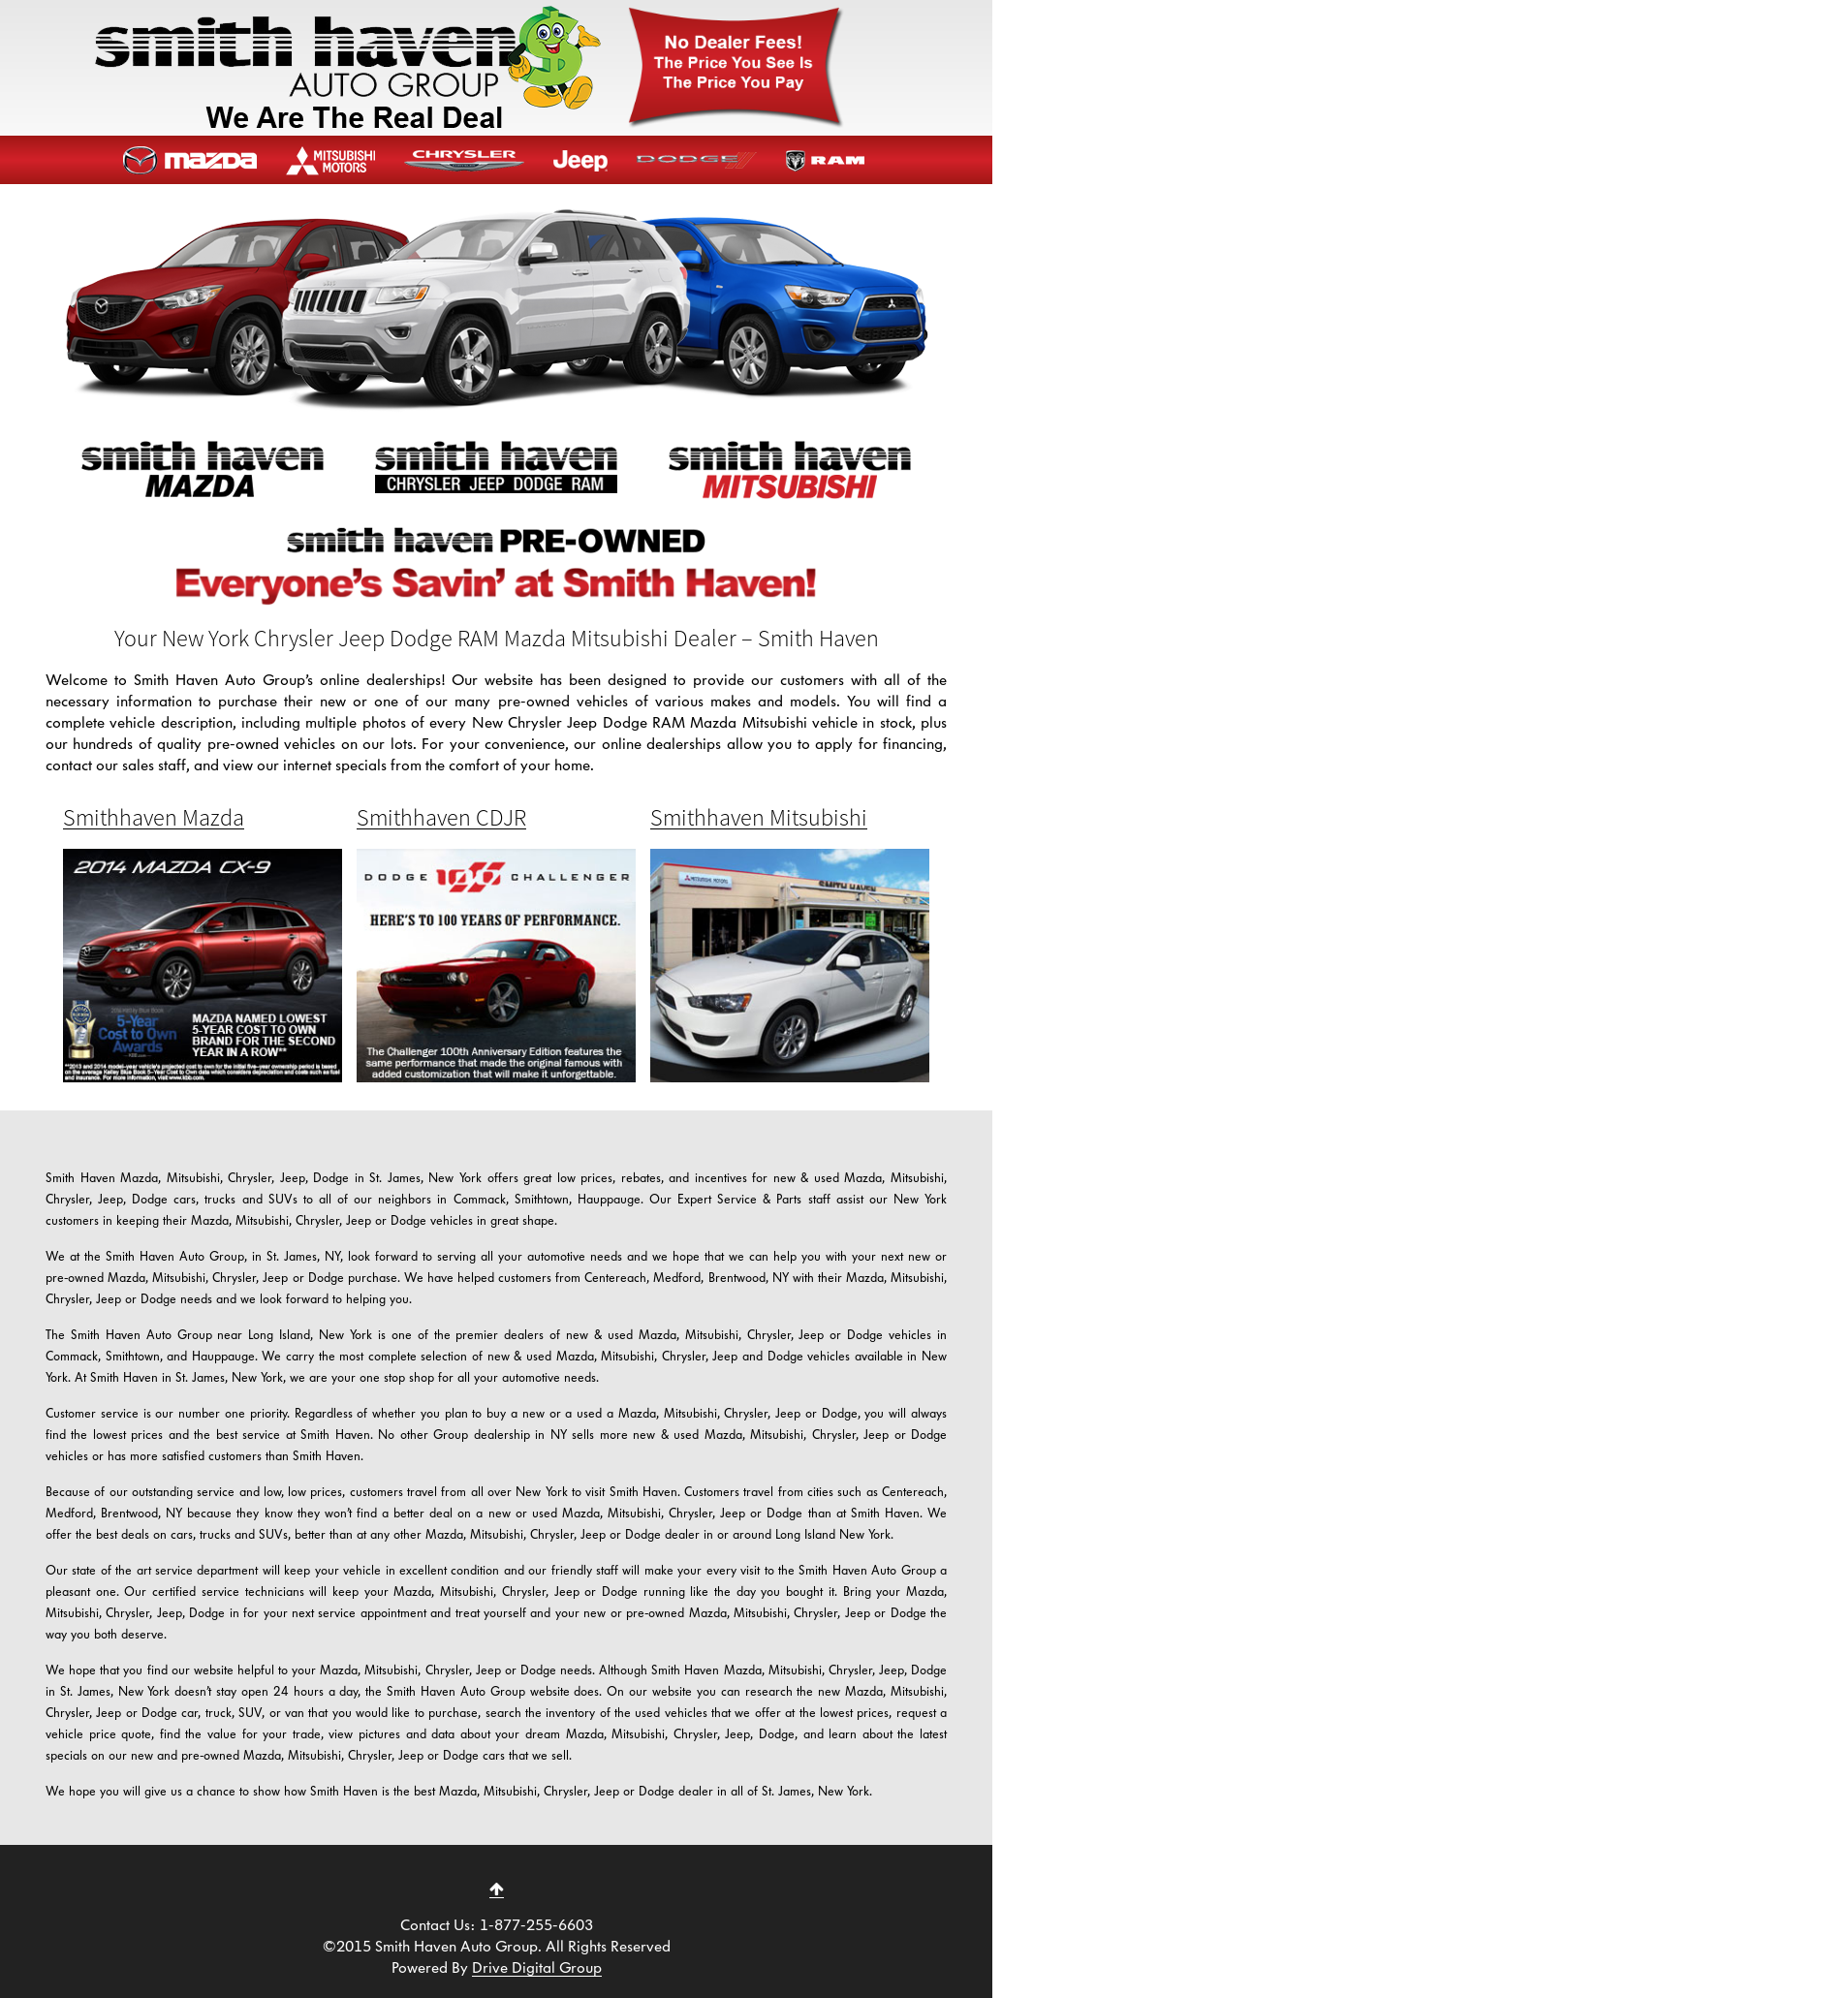 Smith Haven Jeep >> Smithhaven Dodge Jeep Chrysler Competitors Revenue And